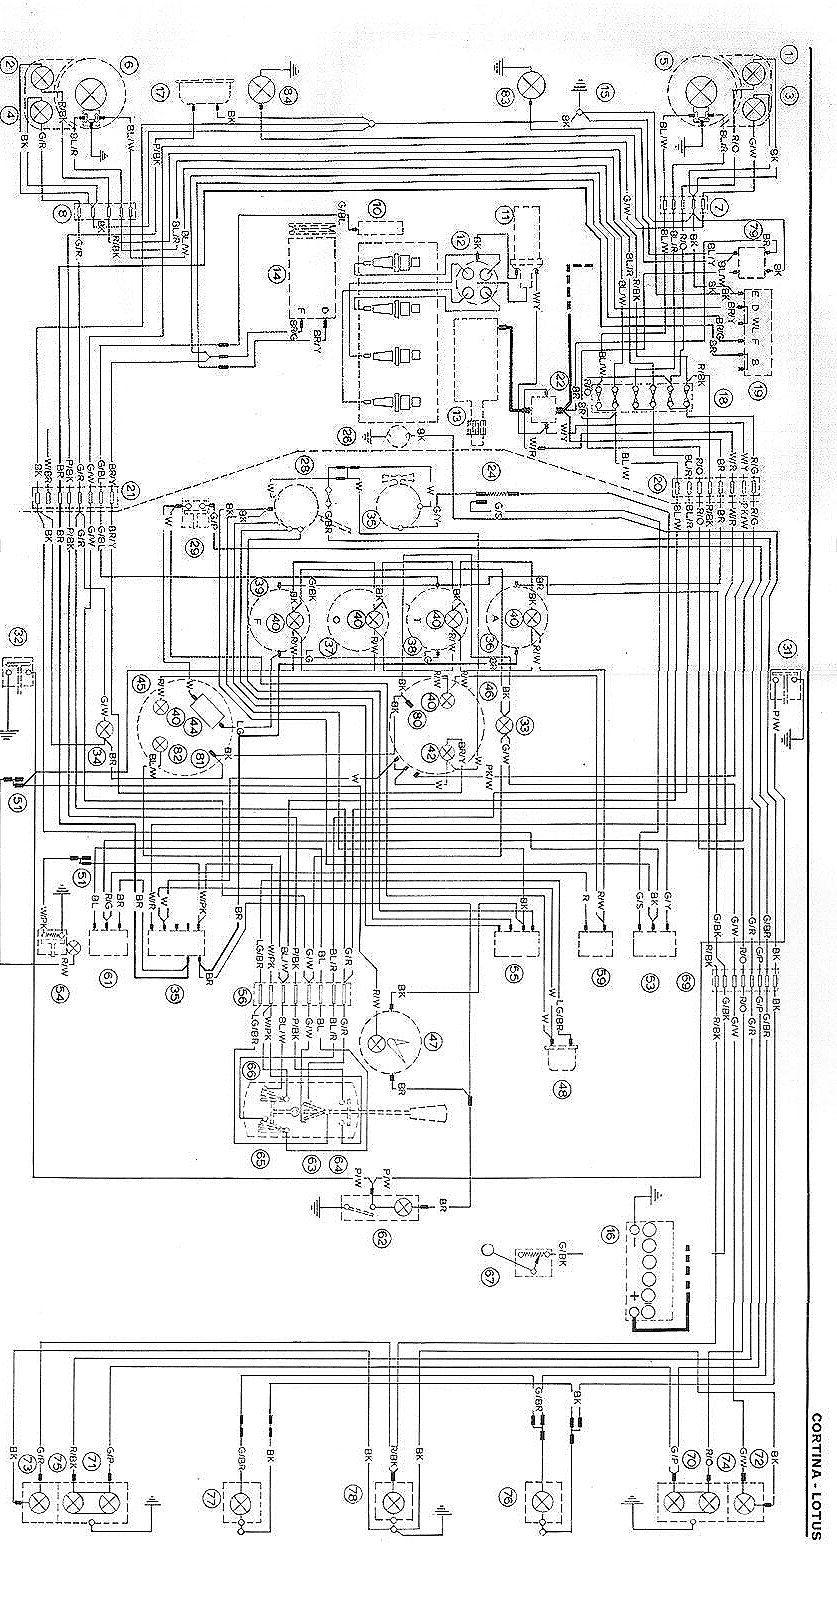 hight resolution of ford focus mk1 wiring diagram pdf auto engine and parts diagram 1937 ford wiring diagram ford